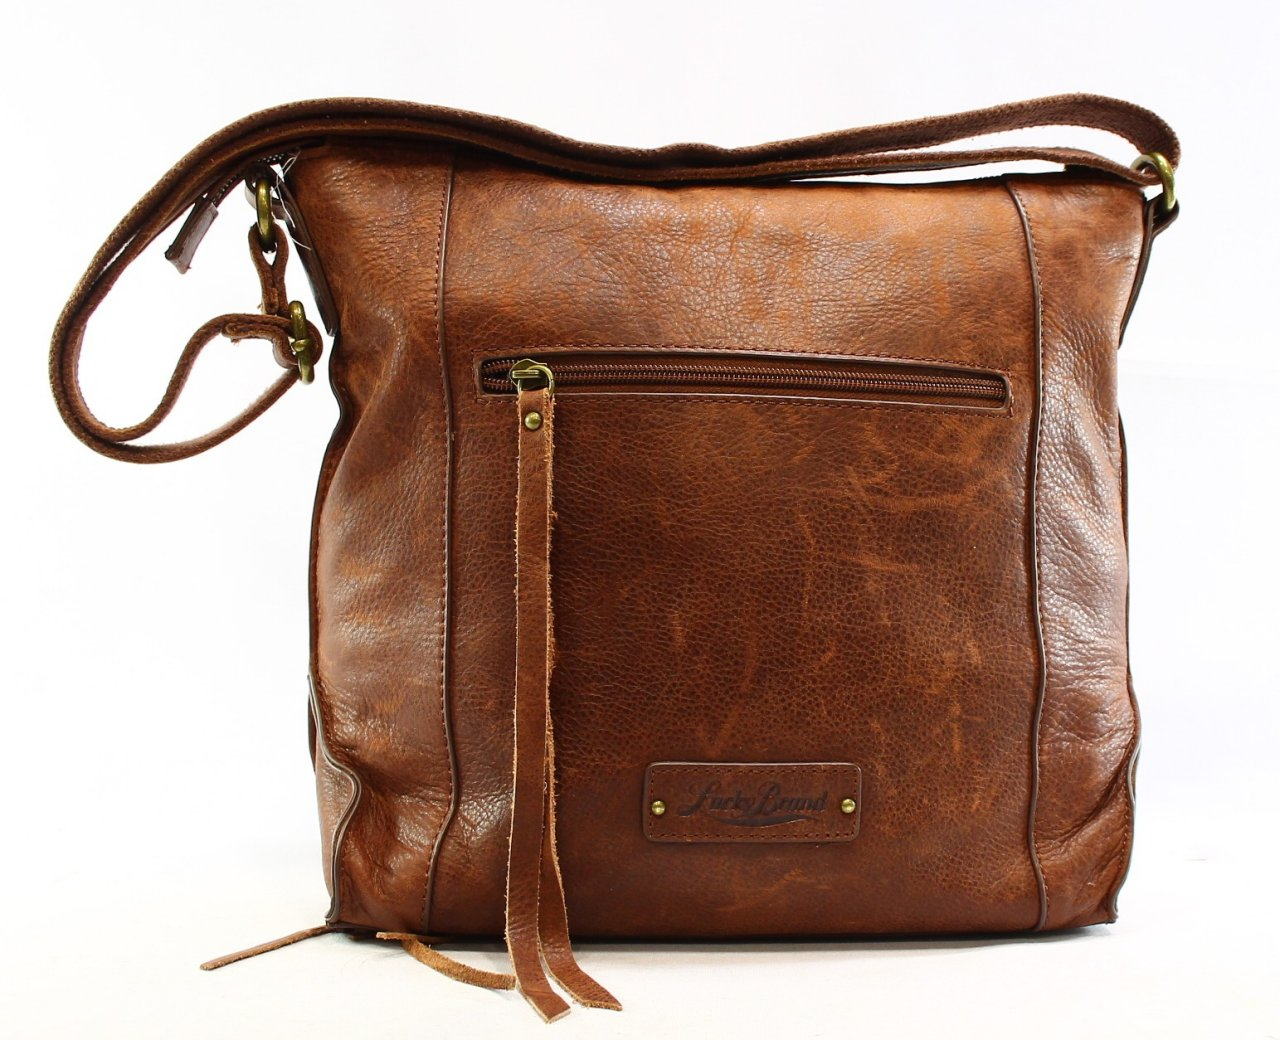 Lucky Brand Cross Body Bags Sale: Save Up to 30% Off! Shop erlinelomantkgs831.ga's huge selection of Lucky Brand Cross Body Bags and save big! FREE Shipping & Exchanges, and a % price guarantee!